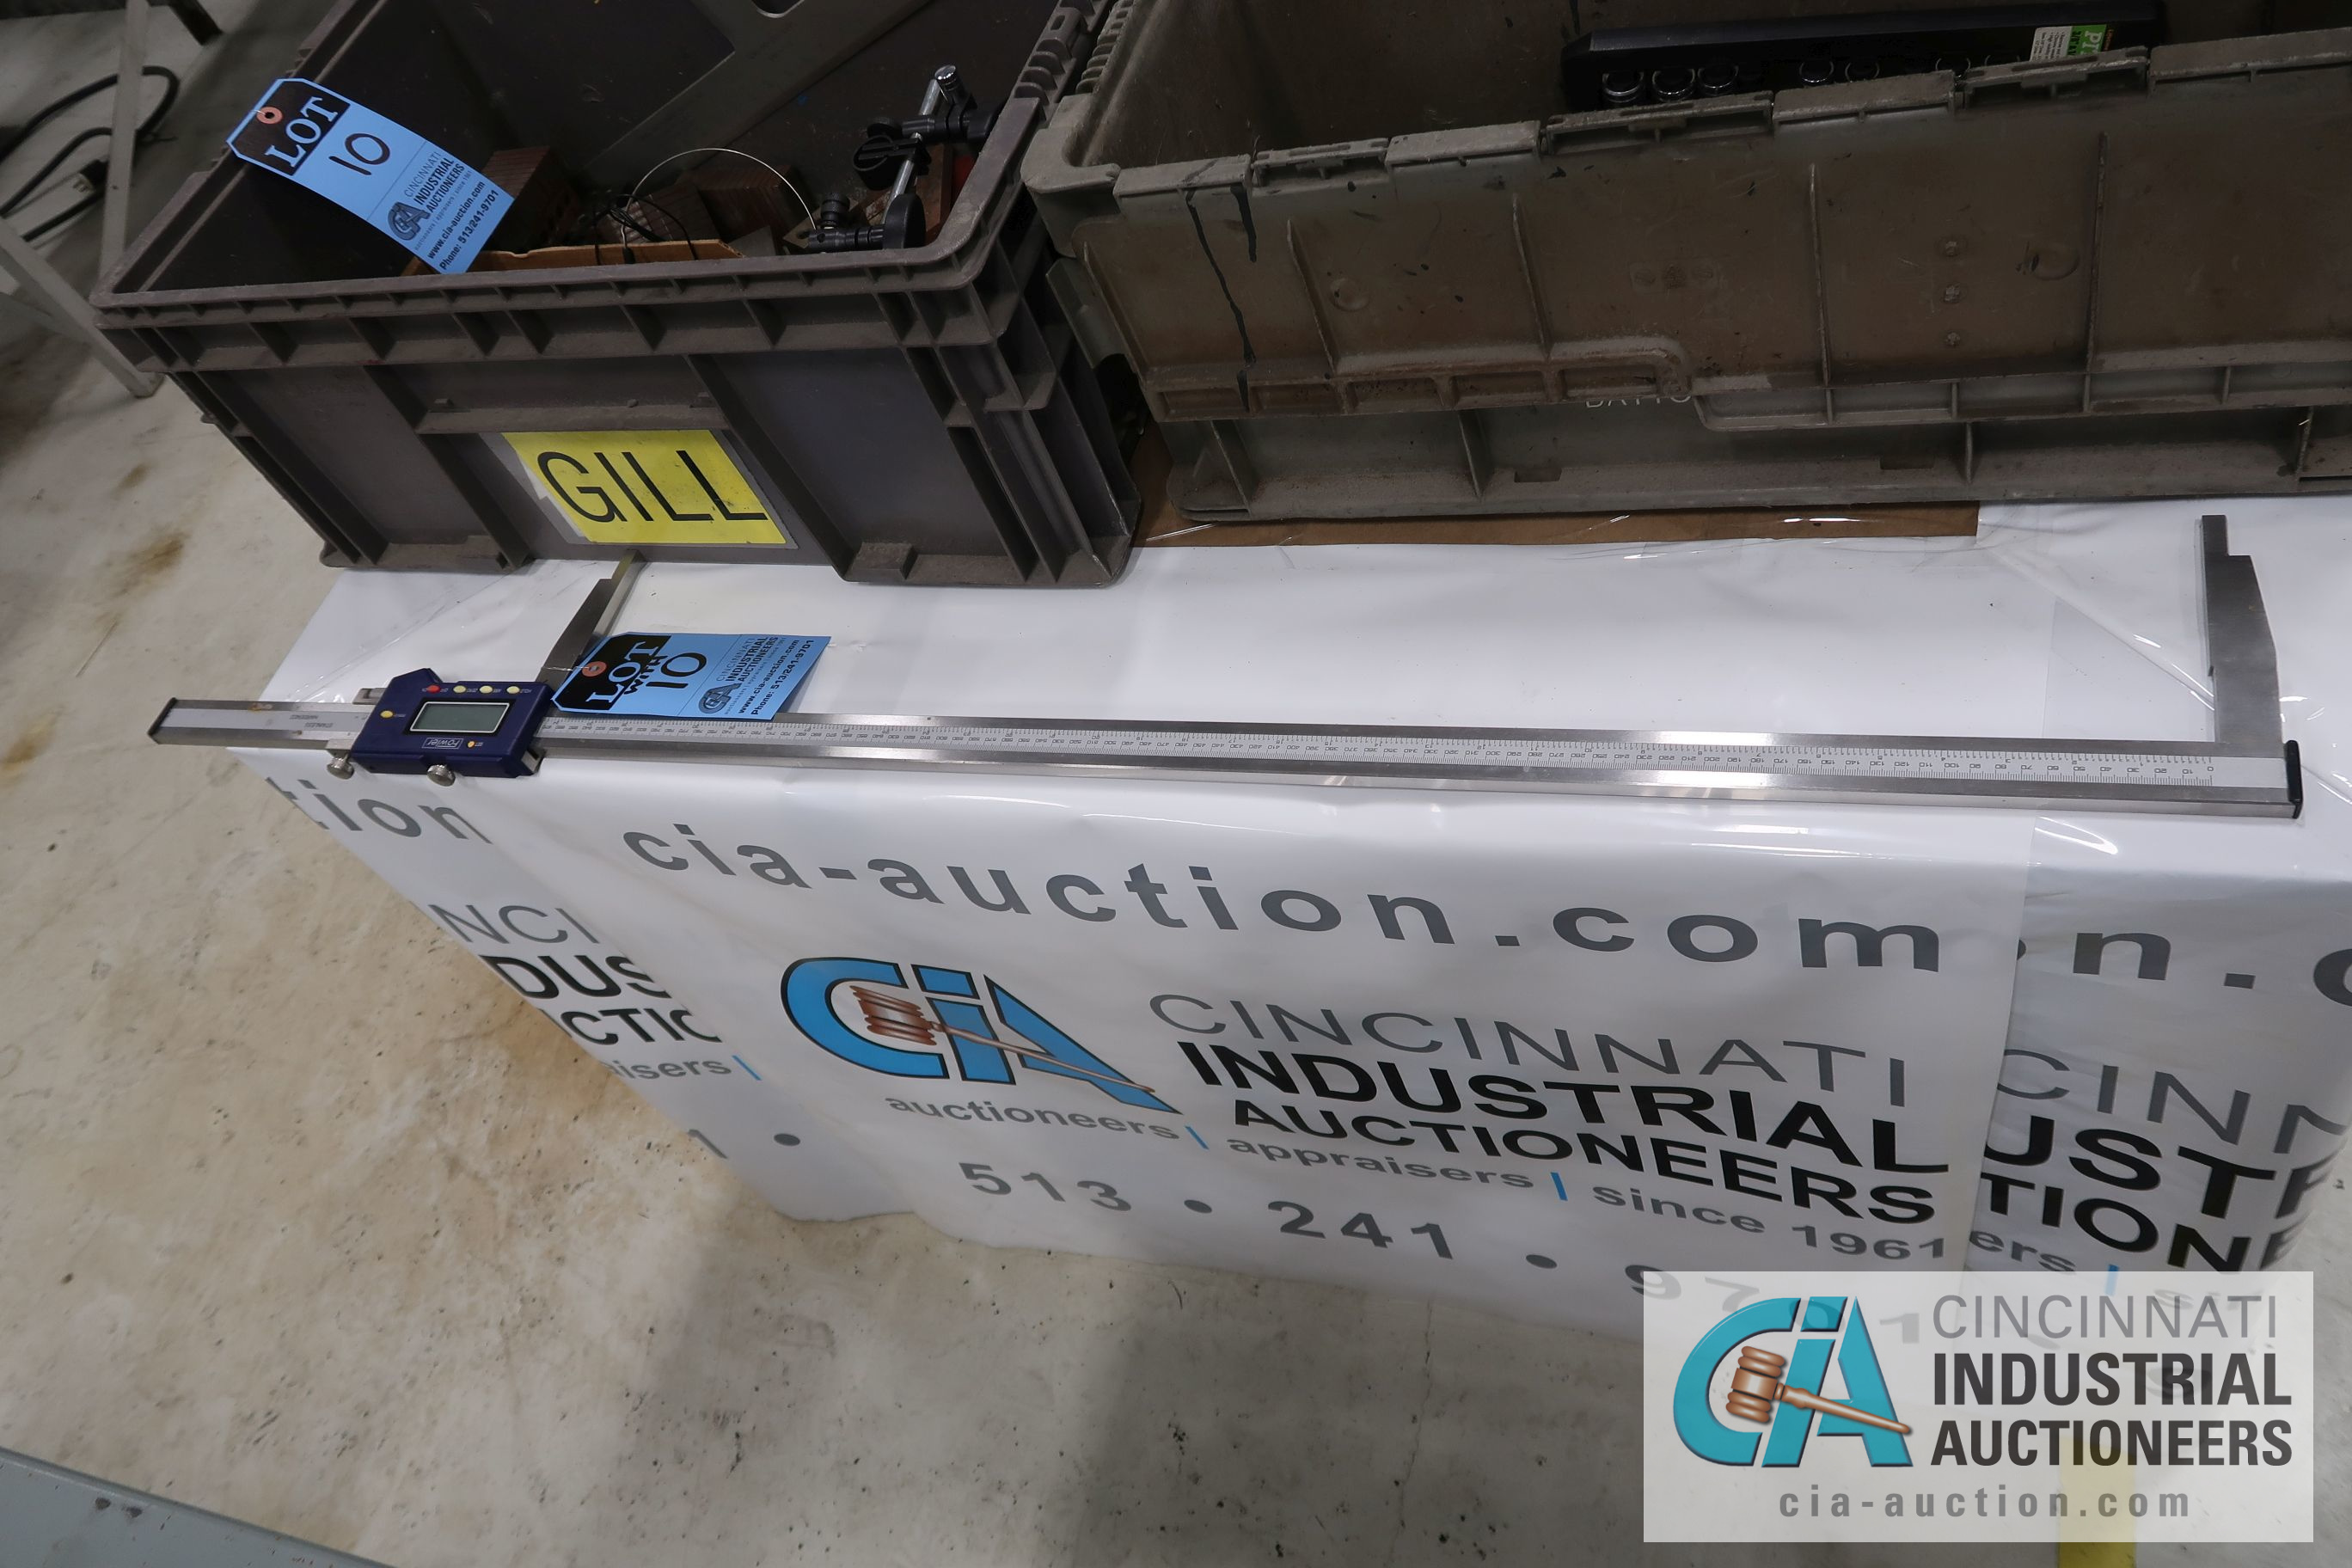 """(LOT) MISCELLANEOUS INSPECTION EQUIPMENT WITH 40"""" FOWLER DIGITAL CALIPER - Image 2 of 3"""